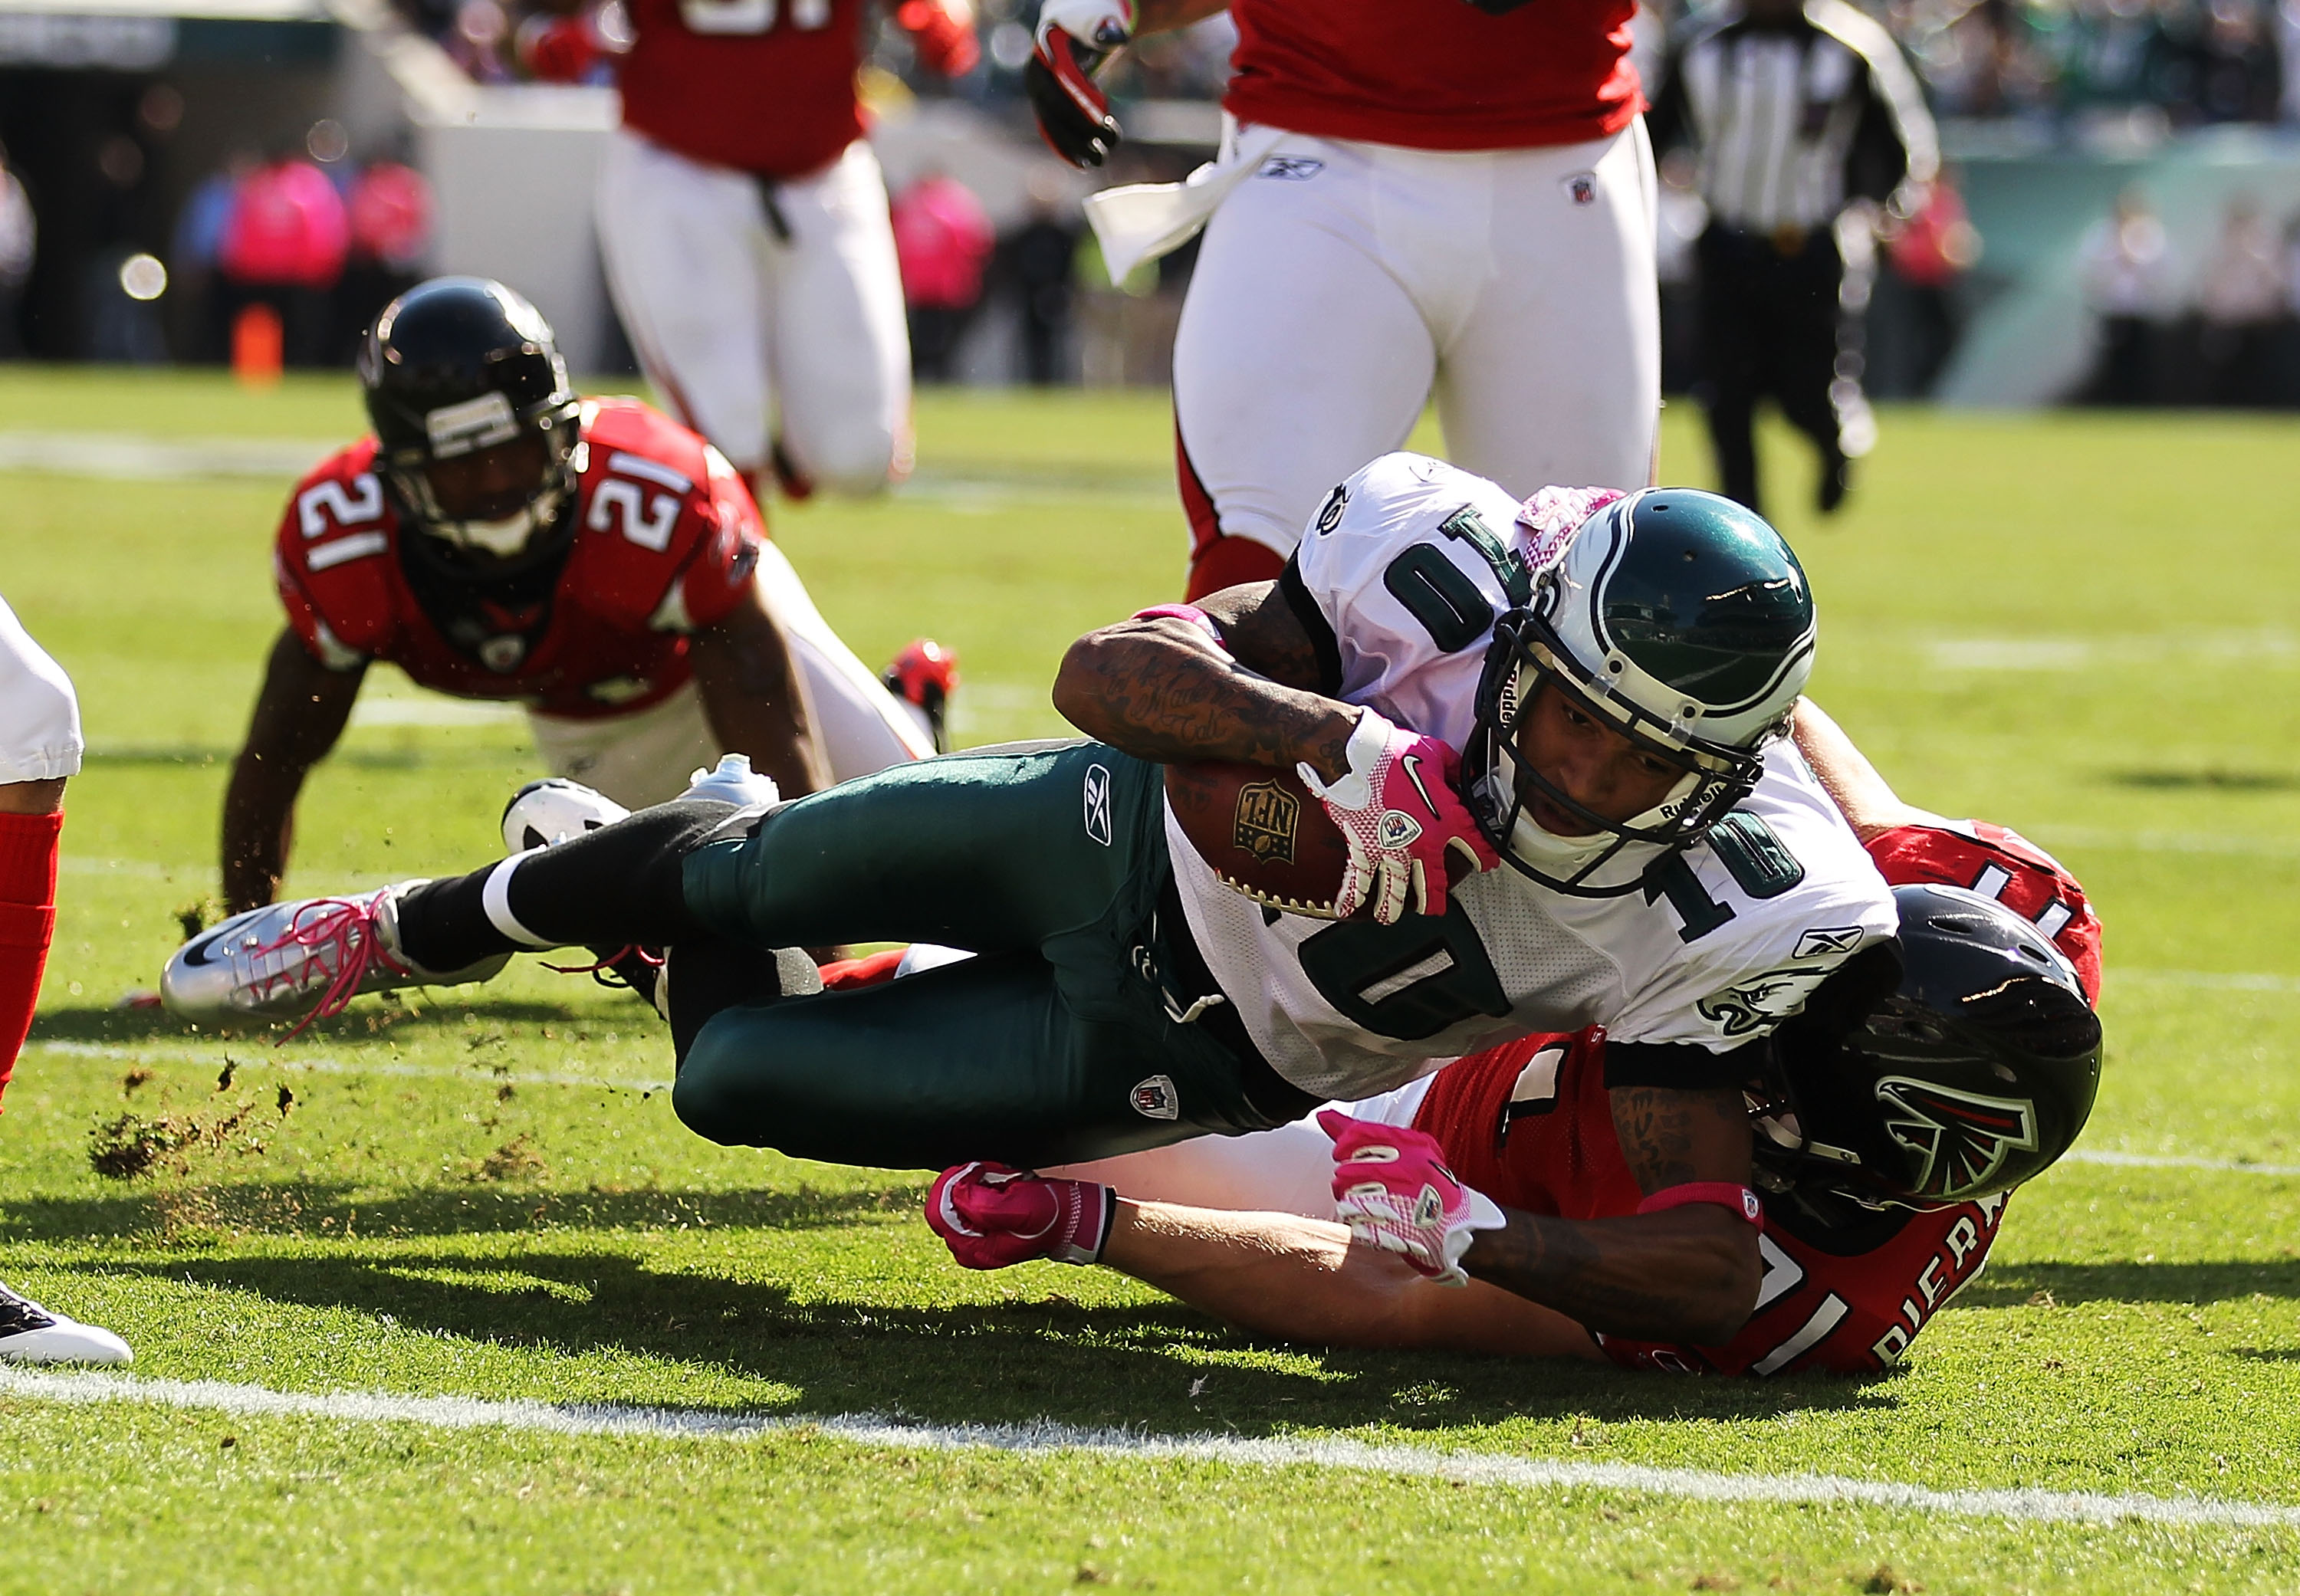 PHILADELPHIA - OCTOBER 17:  DeSean Jackson #10 of the Philadelphia Eagles scores a touchdown in the first quarter as Kroy Biermann #71 of the Atlanta Falcons defends during their game at Lincoln Financial Field on October 17, 2010 in Philadelphia, Pennsyl